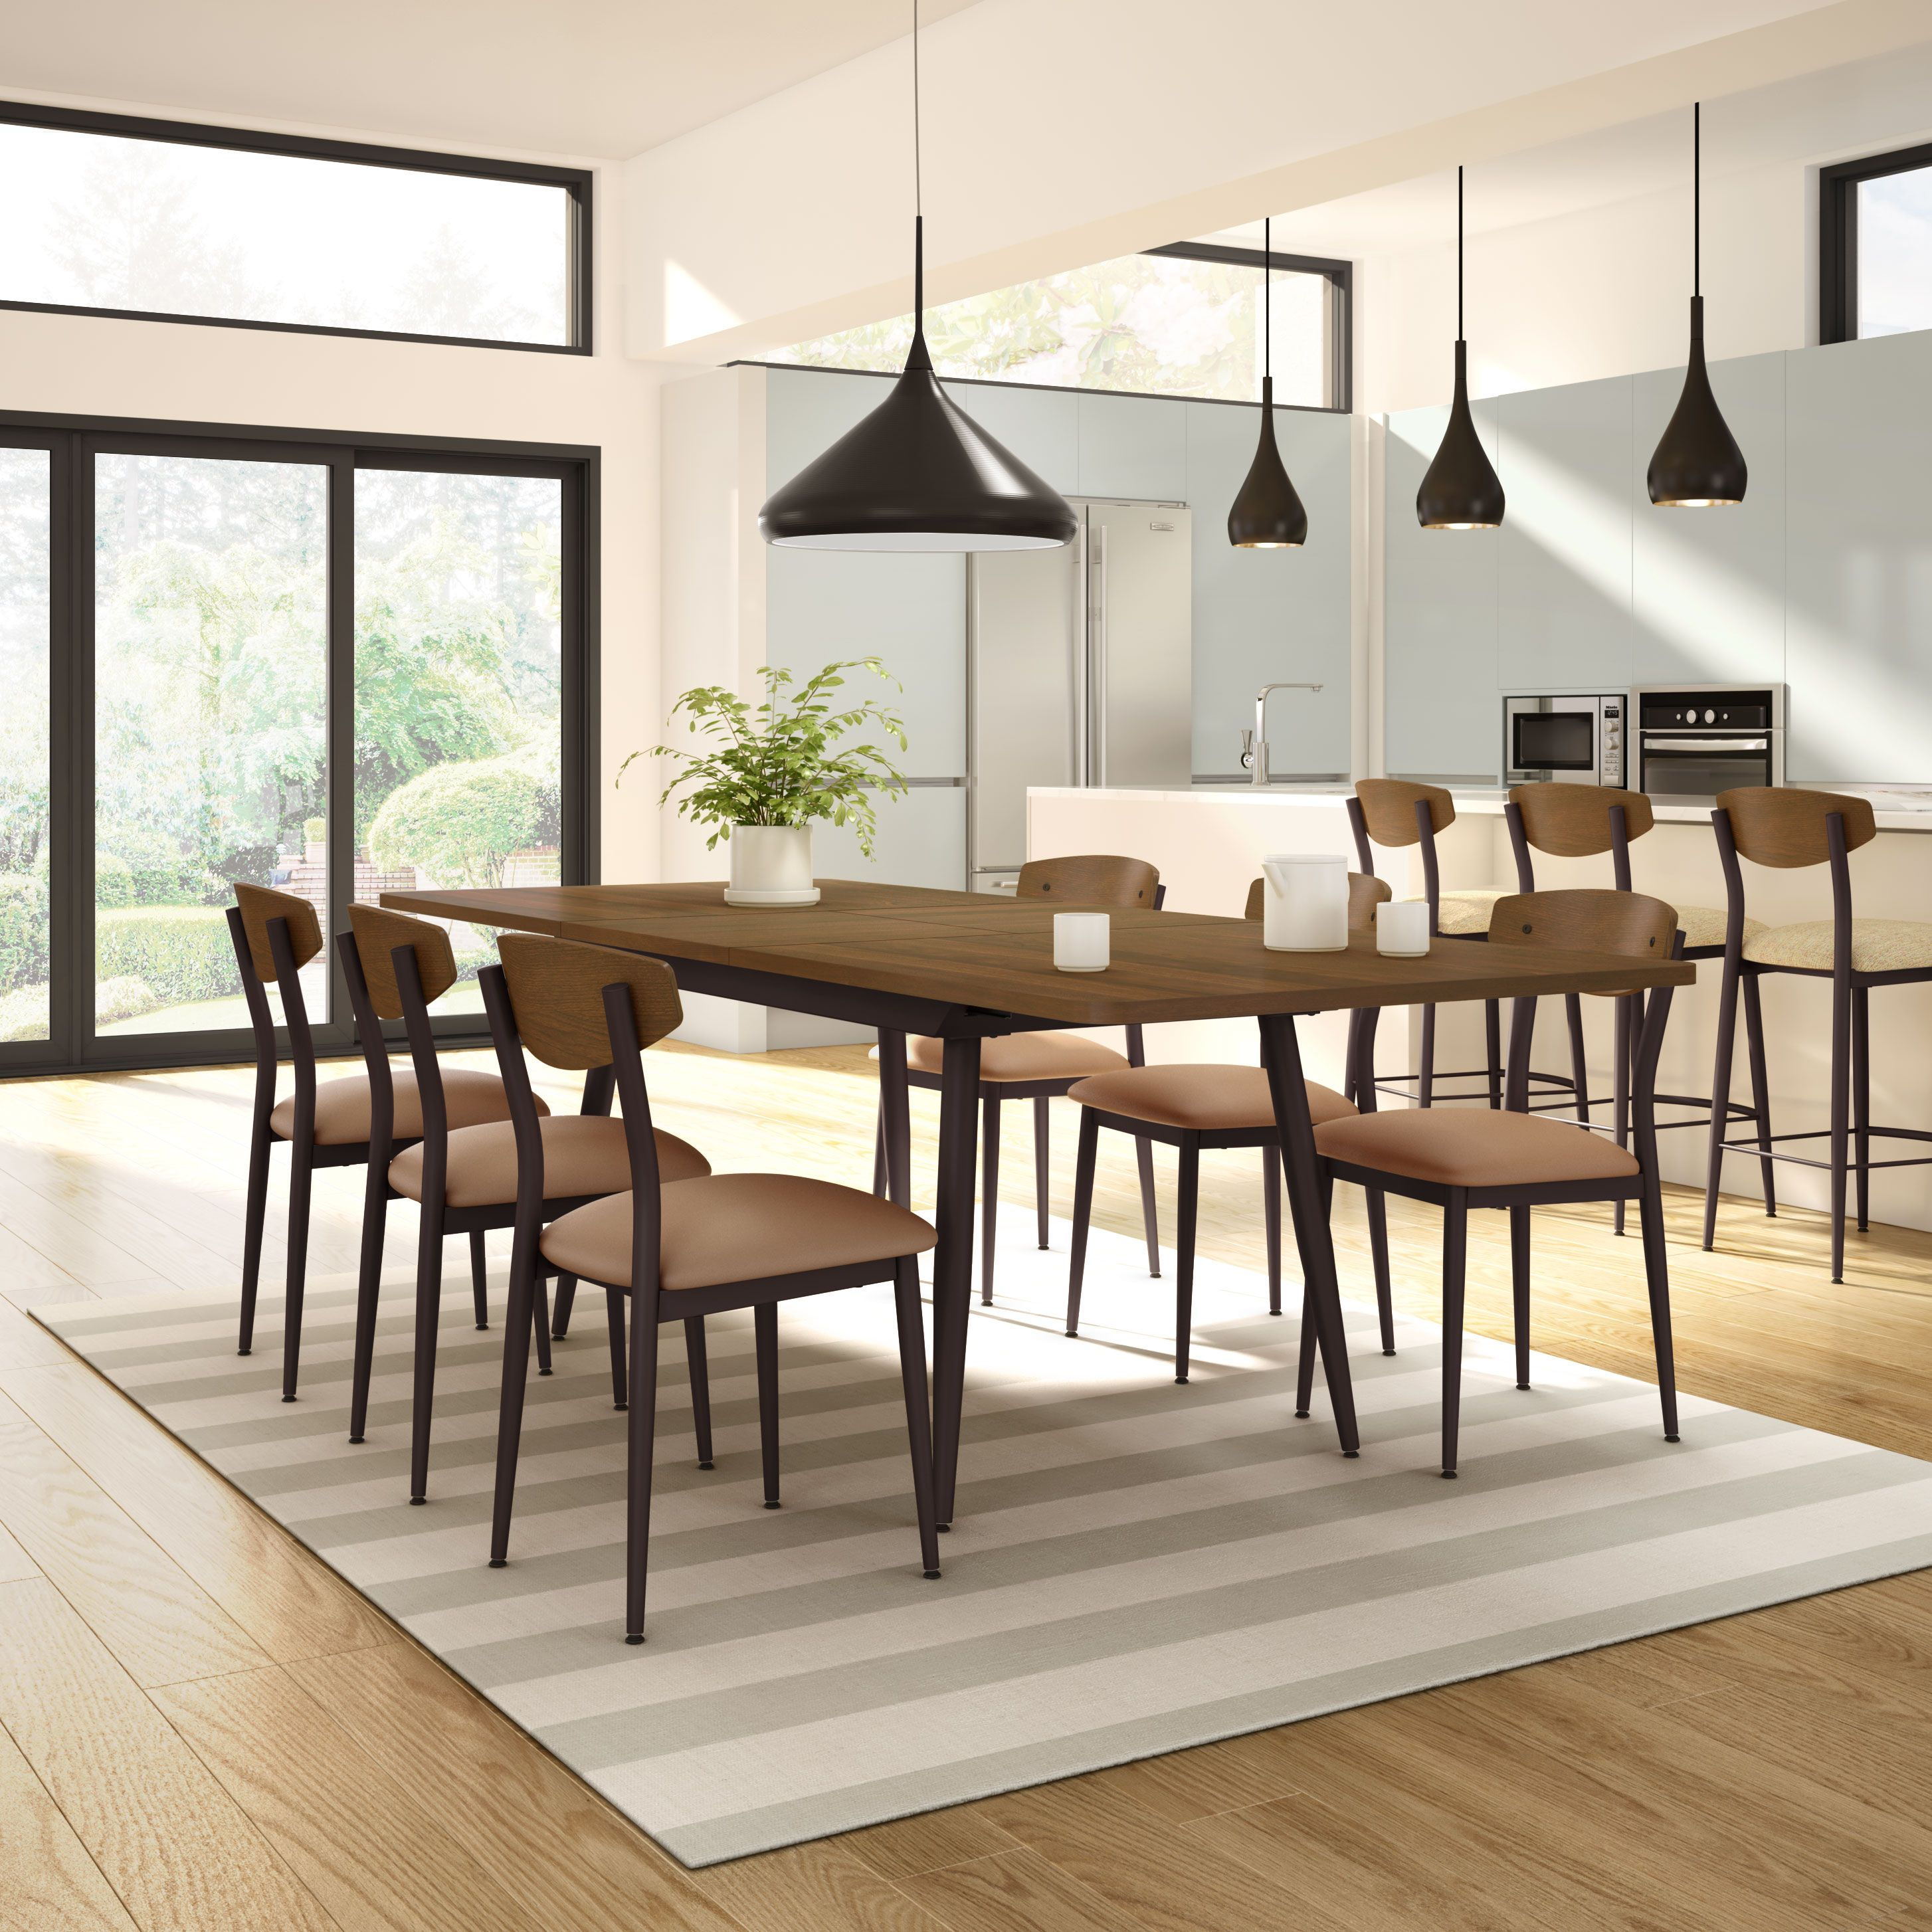 Amisco Richview Table 50531 Hint Chair 30202 Furniture Kitchen Nordic Collection Scandinave Chair